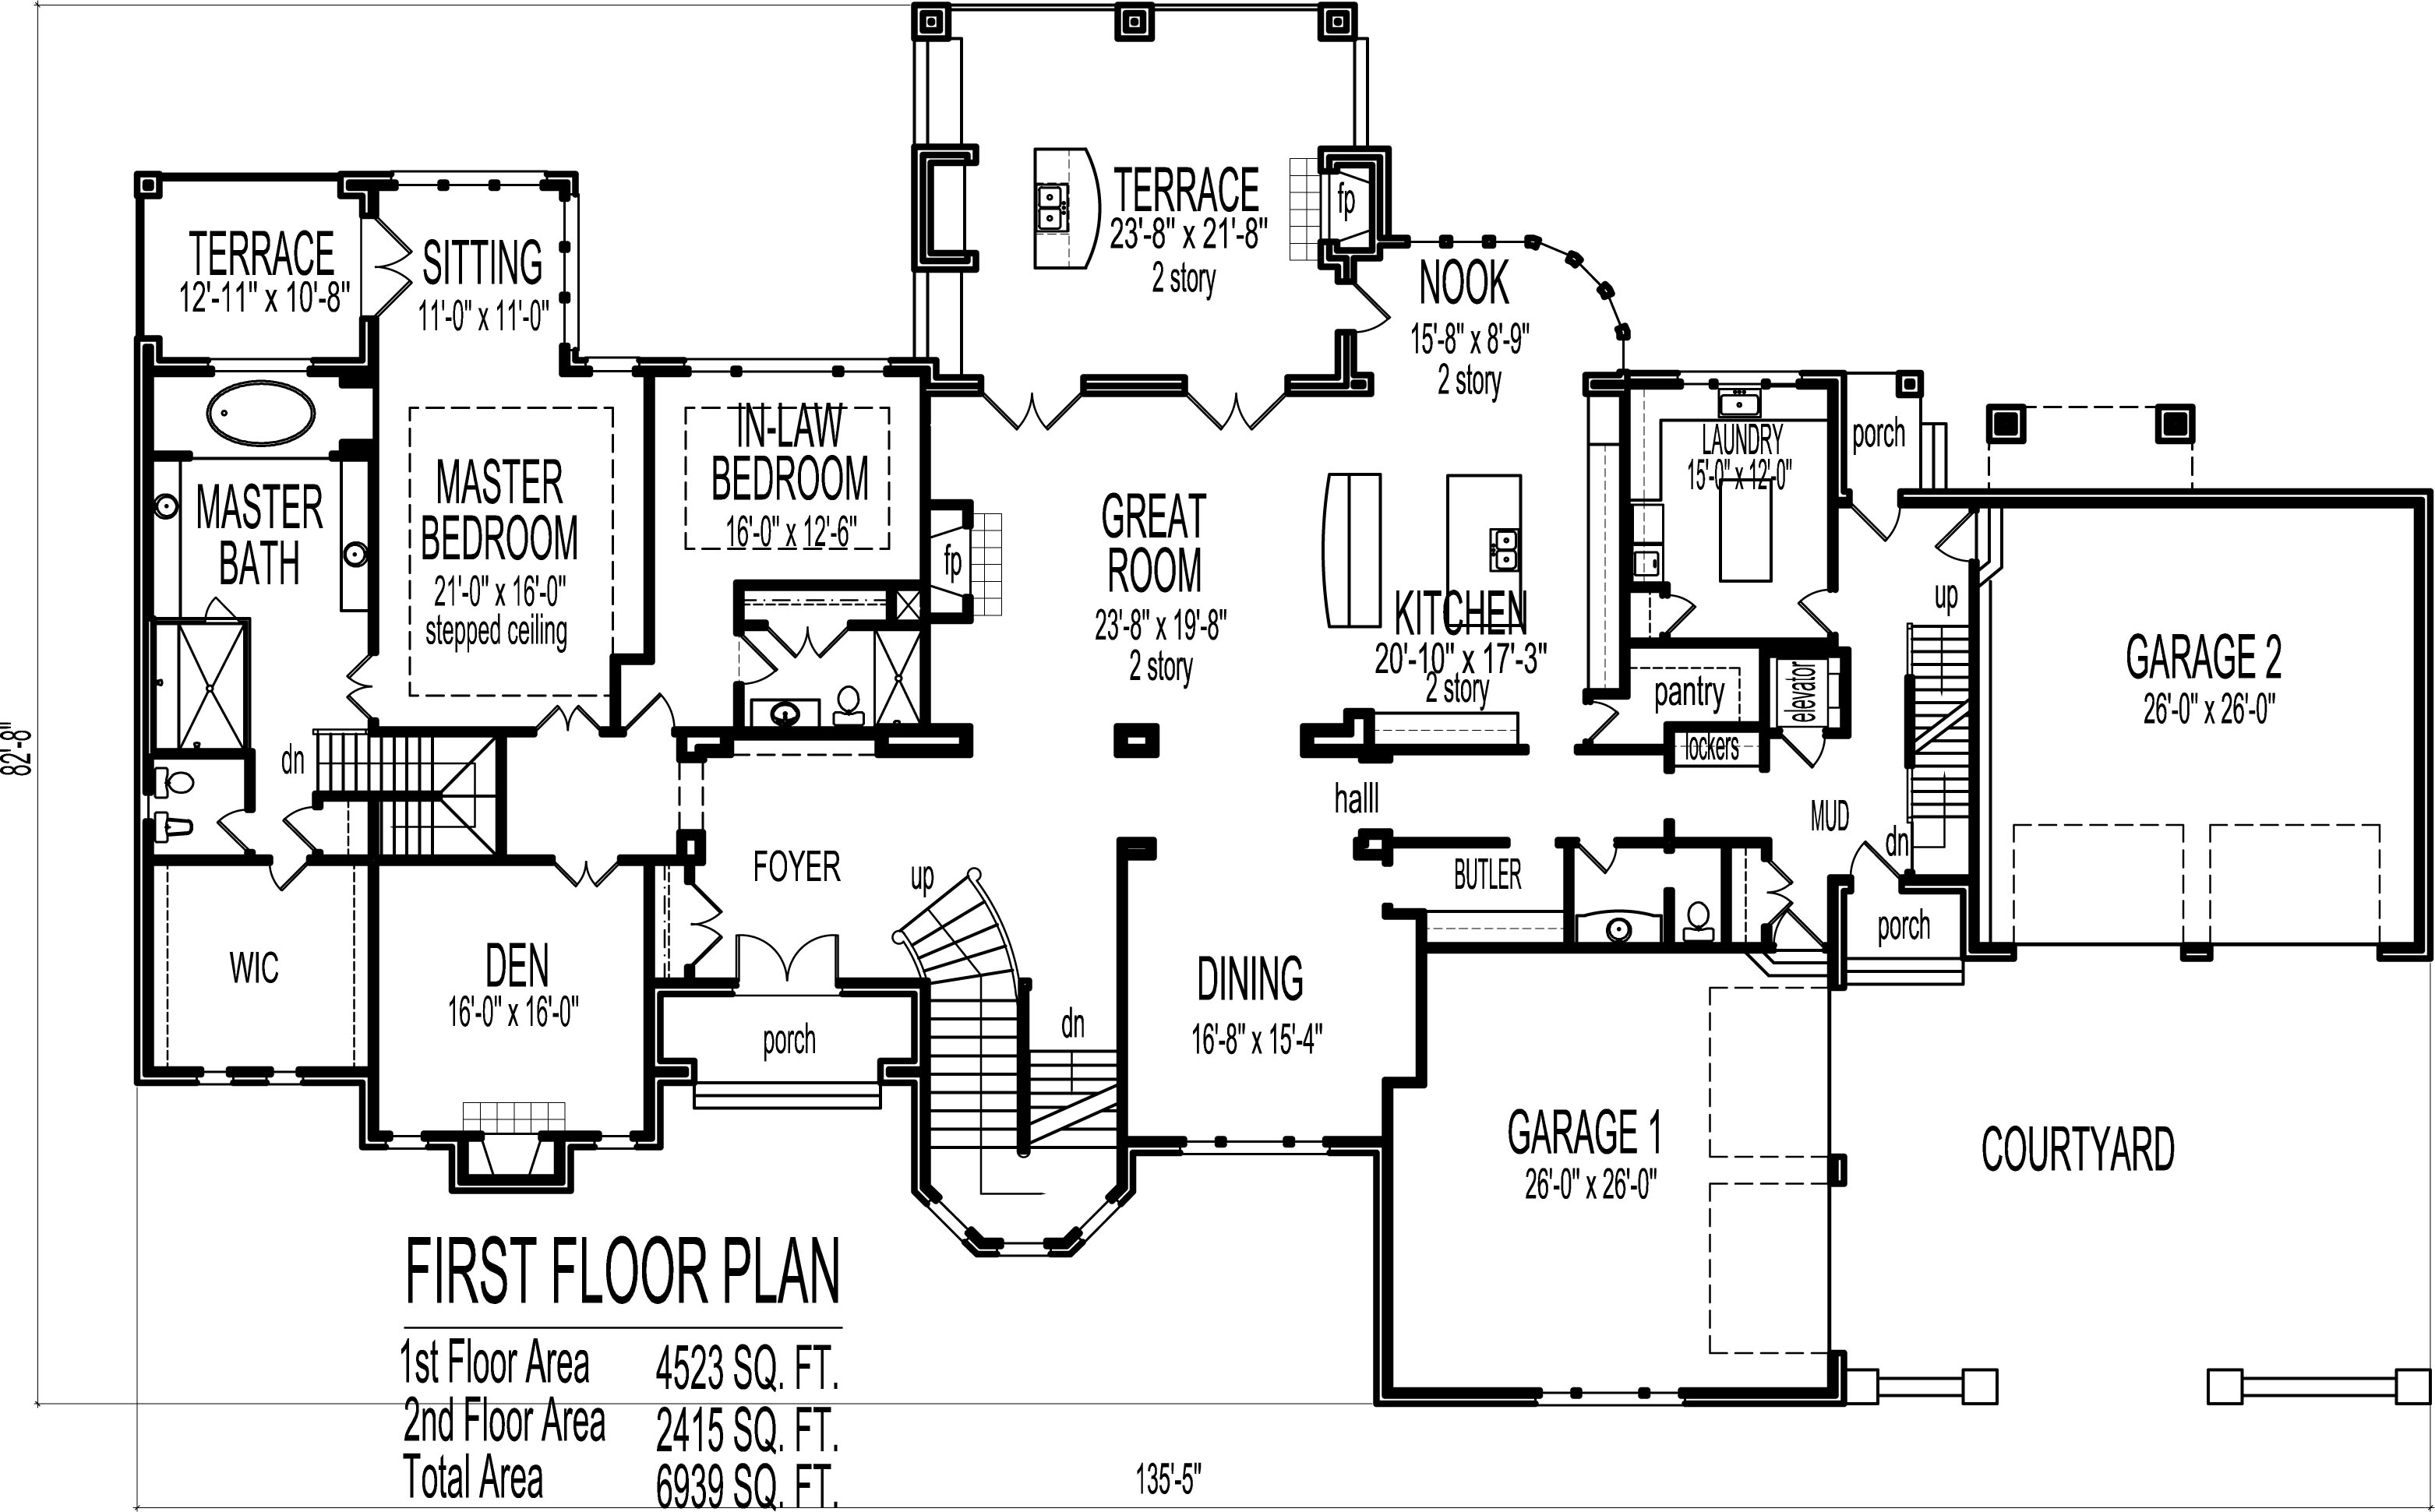 Dream house floor plans blueprints 2 story 5 bedroom large Large floor plans